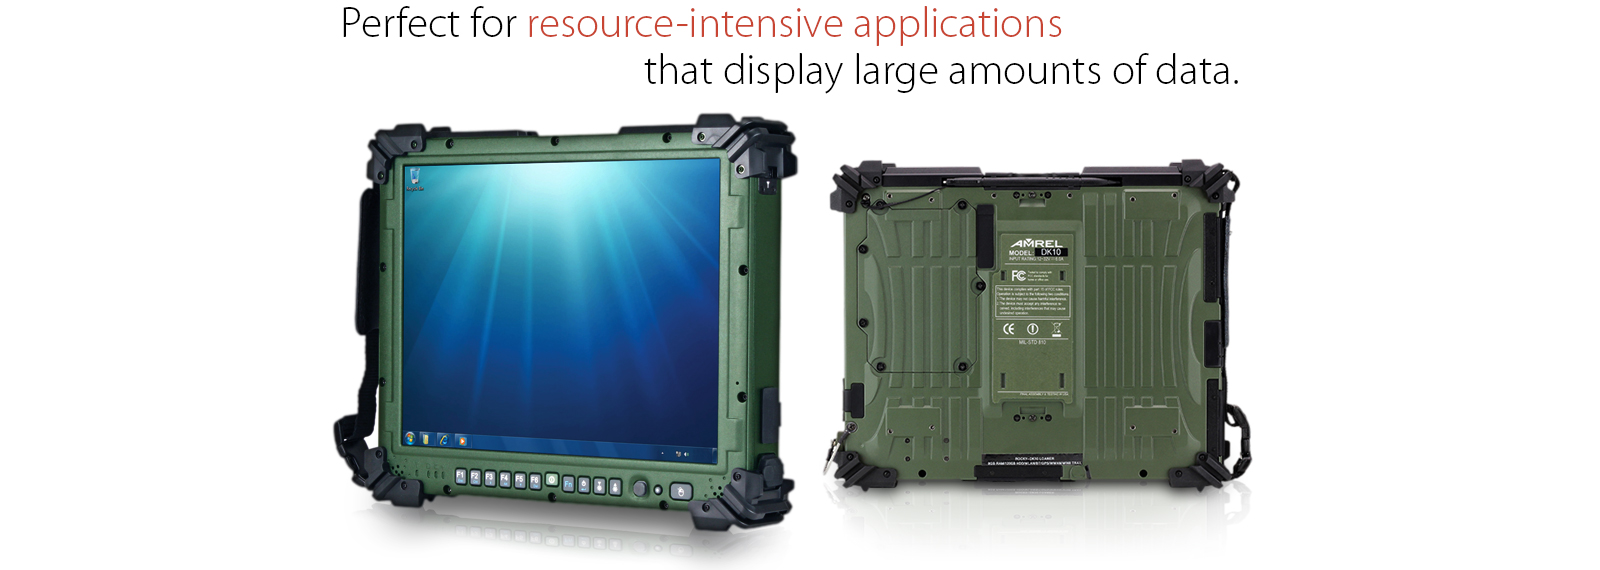 Military grade fully rugged tablet